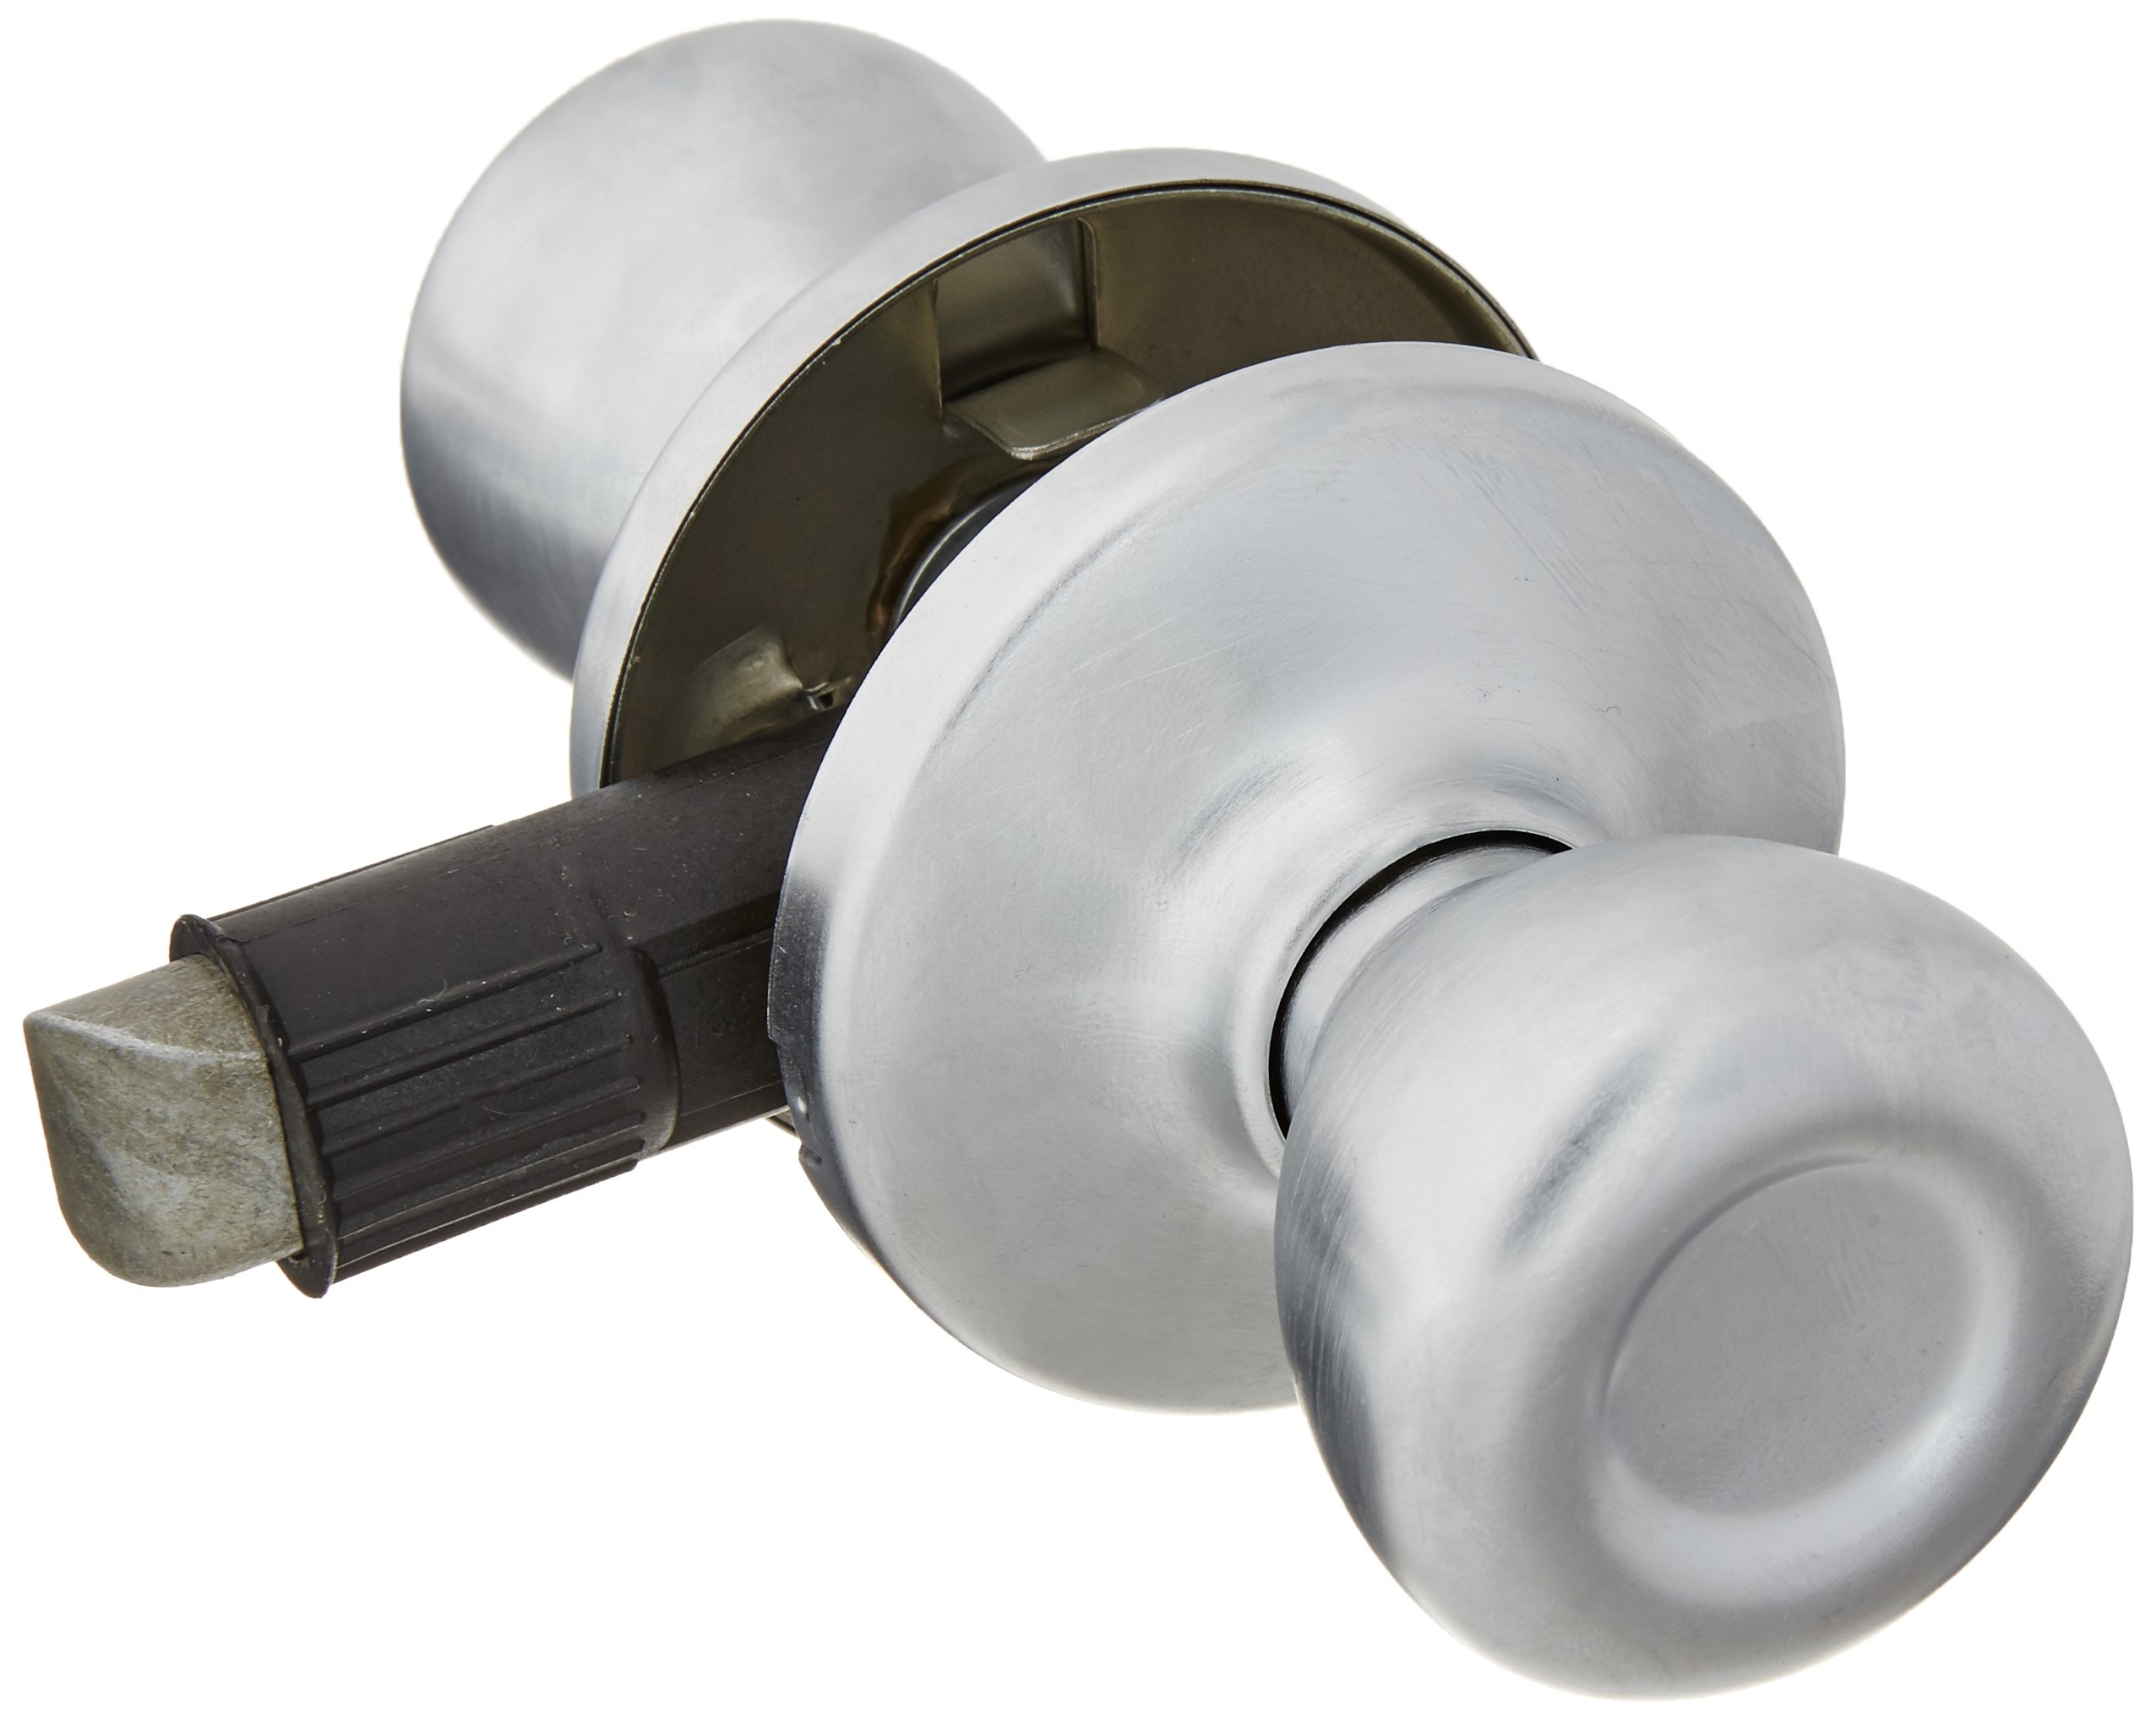 KWIKSET 92001-520 Security Mobile Home Passage Lockset